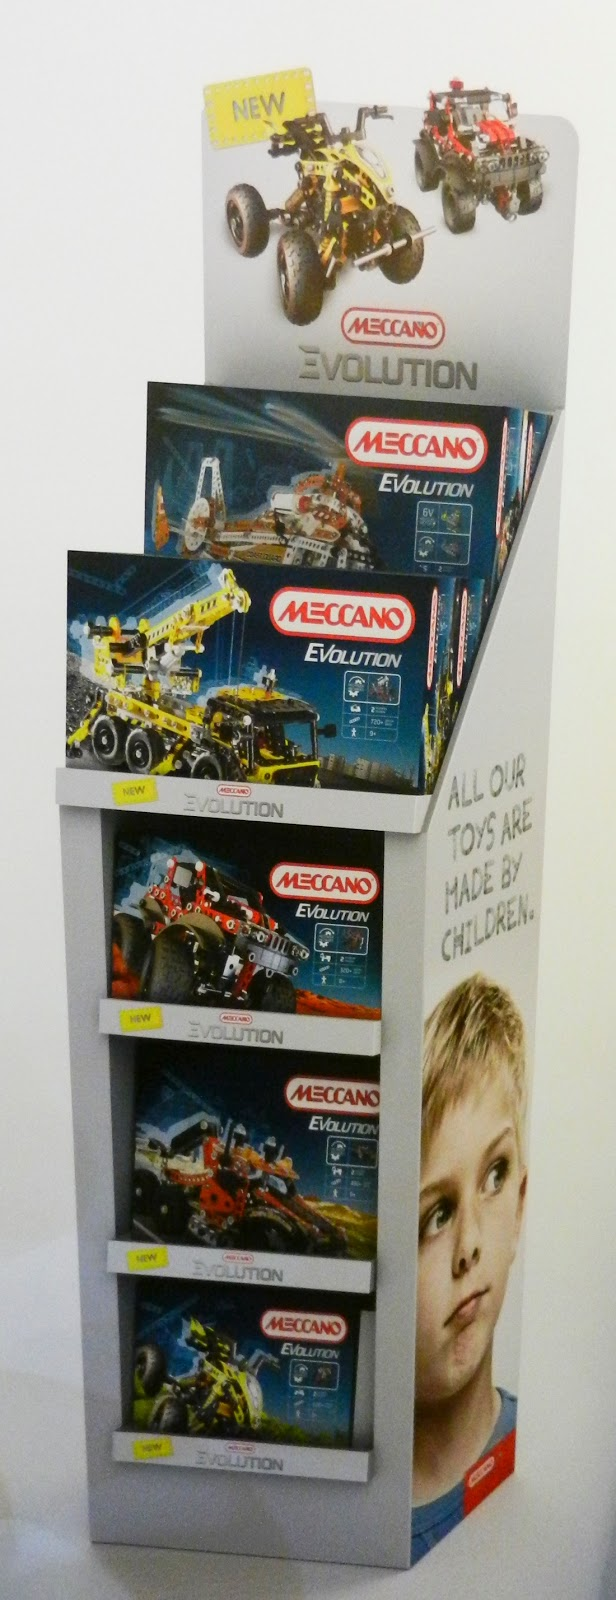 Best Meccano Sets And Toys For Kids : Ralph and sue s meccano news january toy fair the